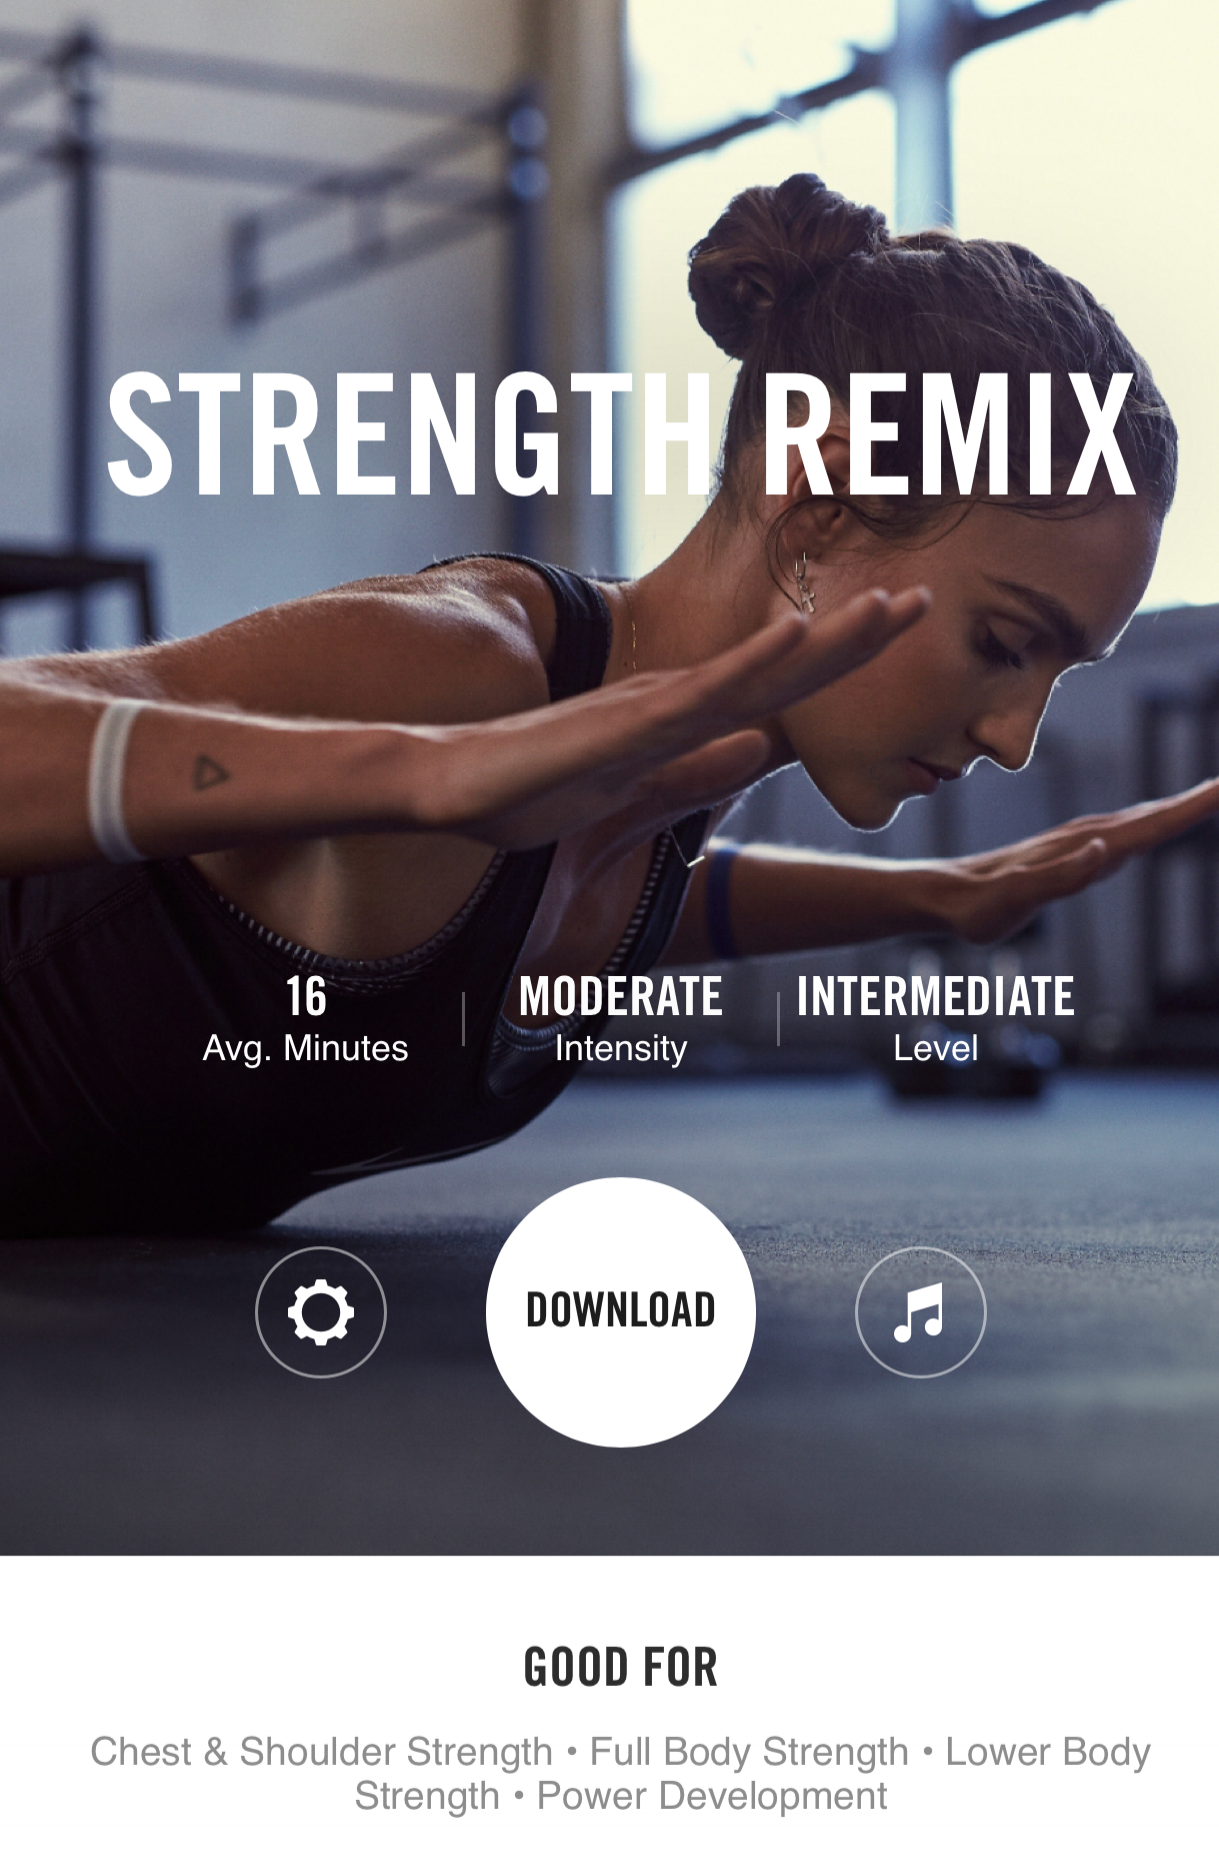 STRENGTH REMIX - A quick, full body, 16 minute workout that you don't need any equipment for. This one is a power boost that will work your full body and focus on your strength.